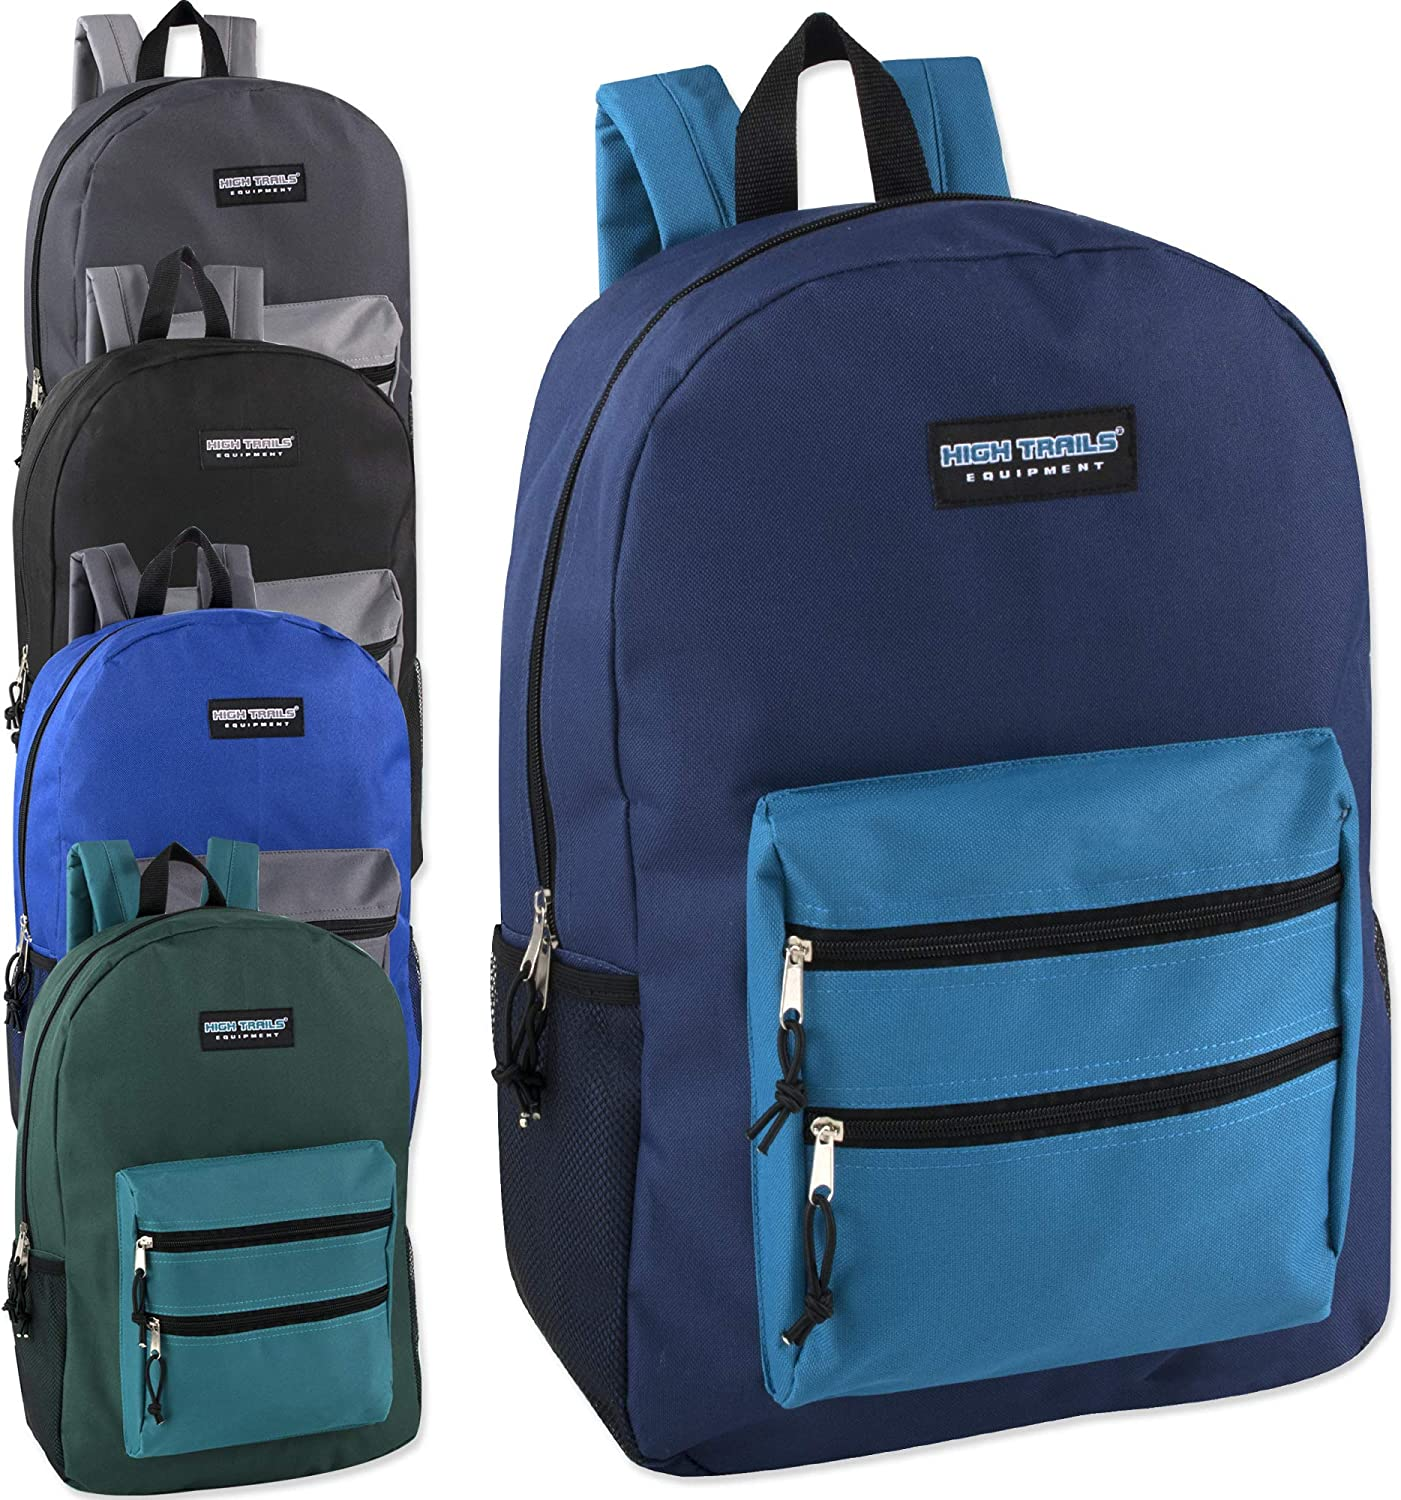 Wholesale High Trails 19 Inch Double Zip Backpacks With Two Side Mesh Pockets in Bulk Case of 24